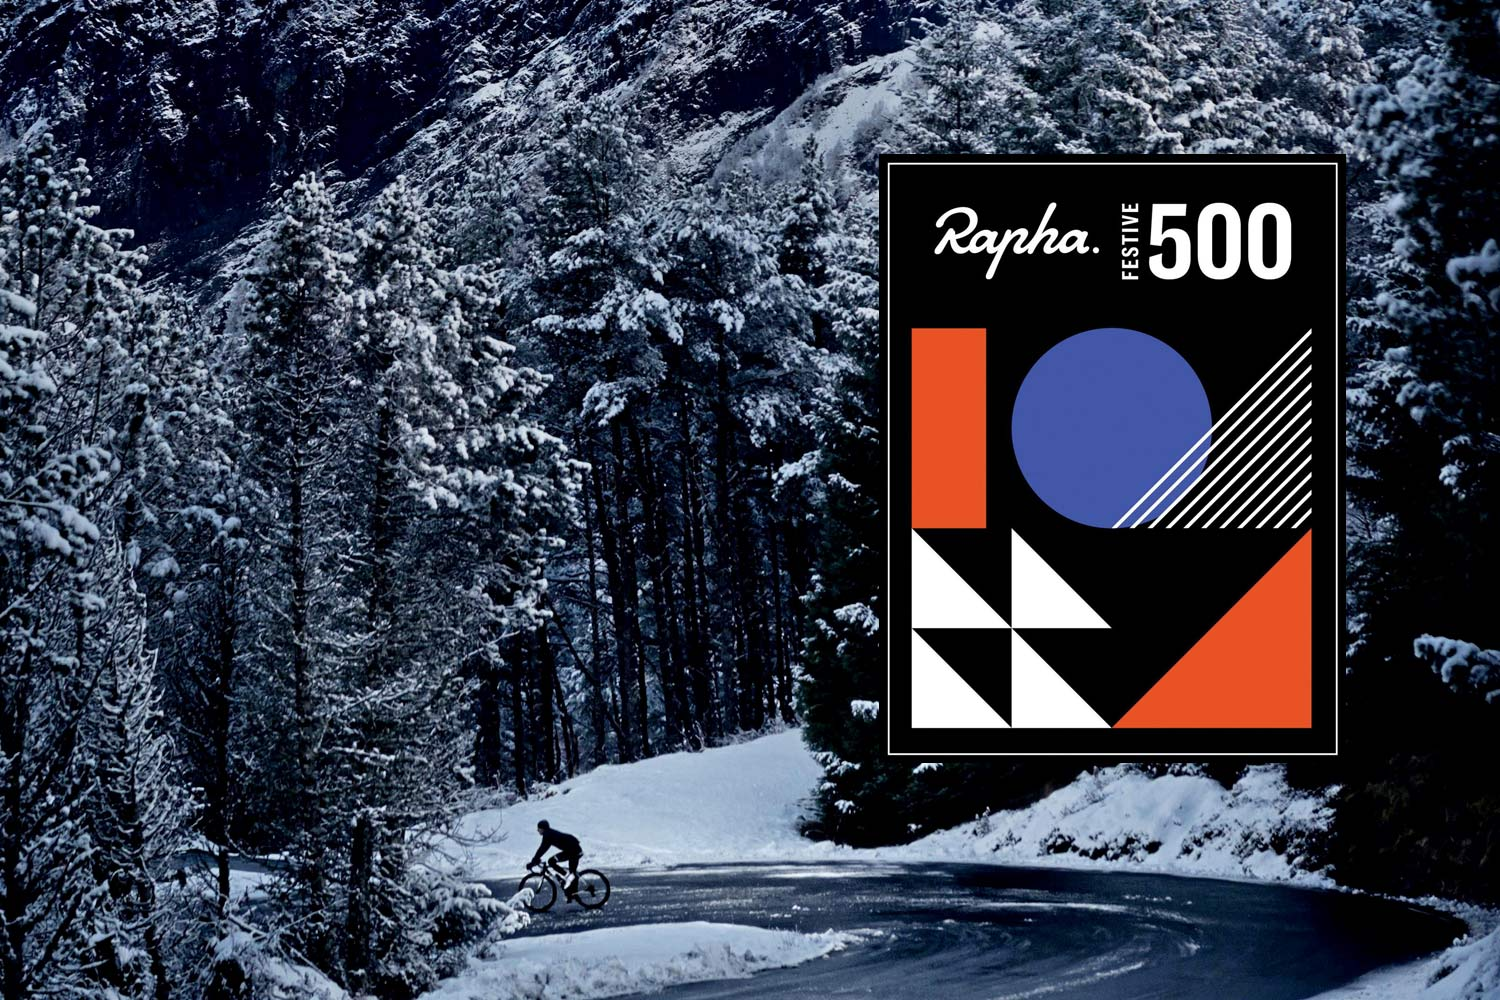 2019 Rapha Festive 500 10th anniversary edition, ride 500km outside from Christmas to New Years building fitness over the holidays